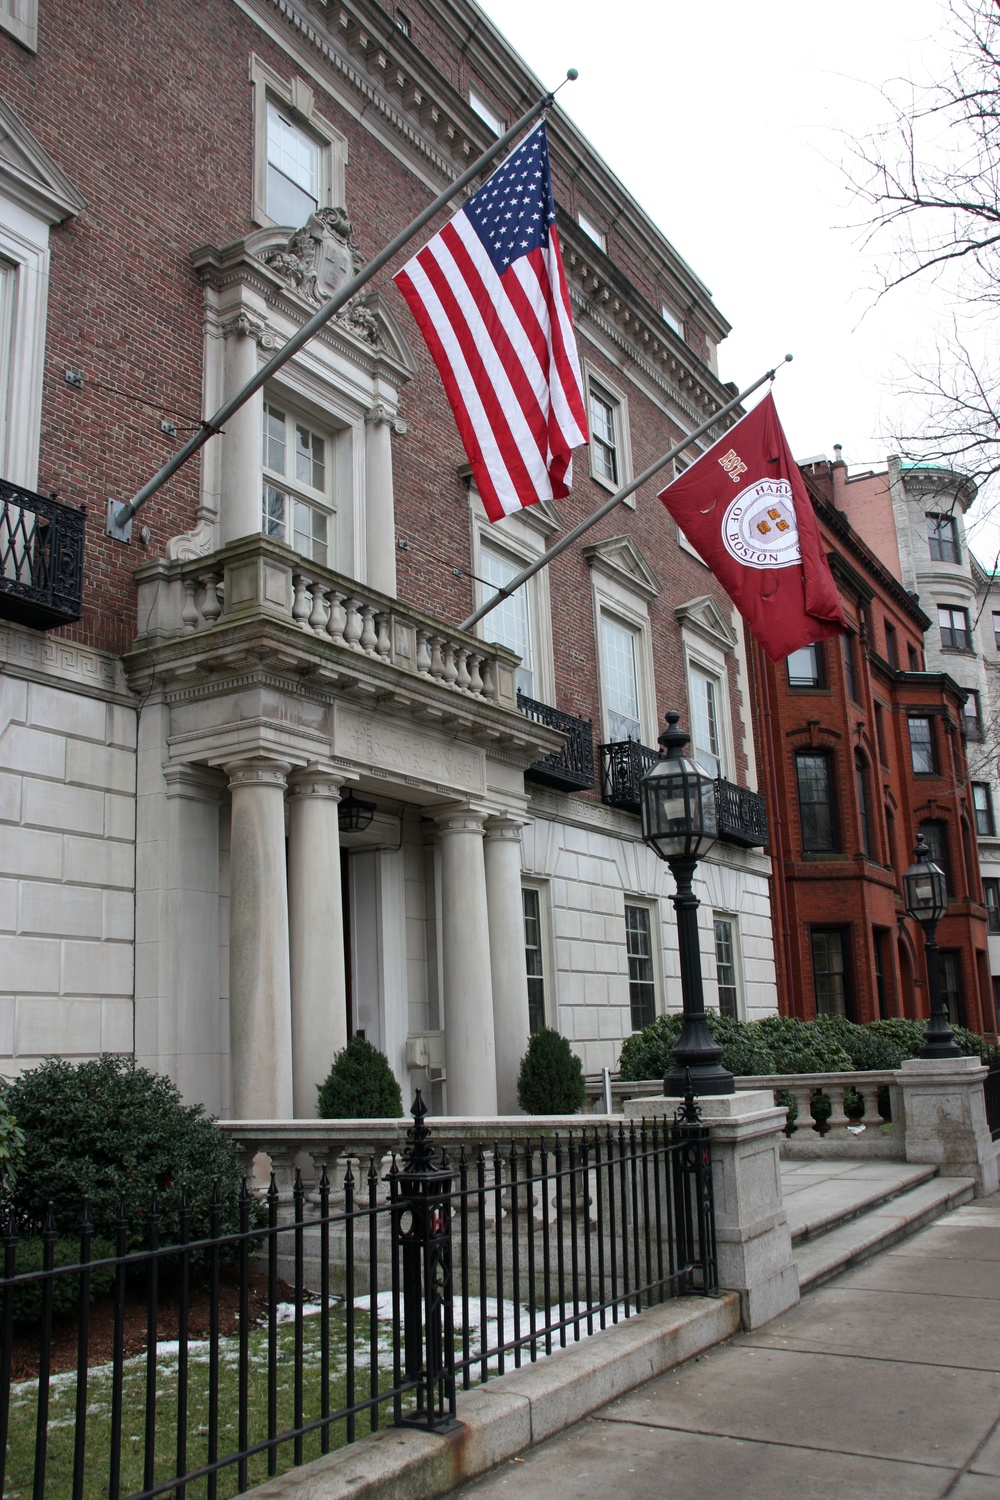 Special events for Harvard alumni are hosted at the Harvard Club of Boston at 374 Commonwealth Avenue.